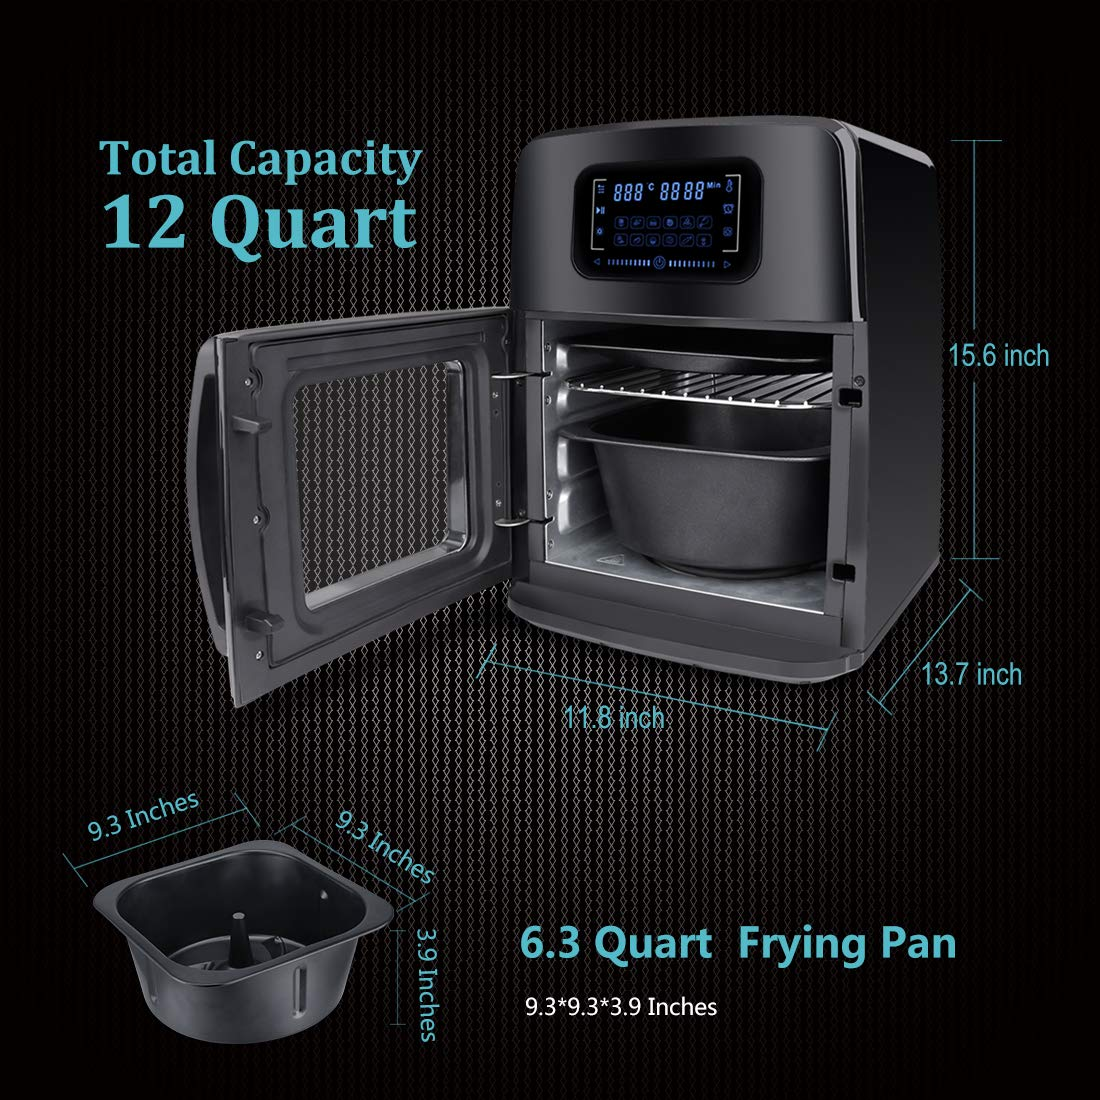 SARKI XL Fryer Viewing Window 12Qt Large Capacity, 6-Piece Programmable Air Oven with 12 Pre Settings Electric Hot Deep 6.3Qt Extra Fry Pan Inside-1700W /110V by SARKI (Image #5)